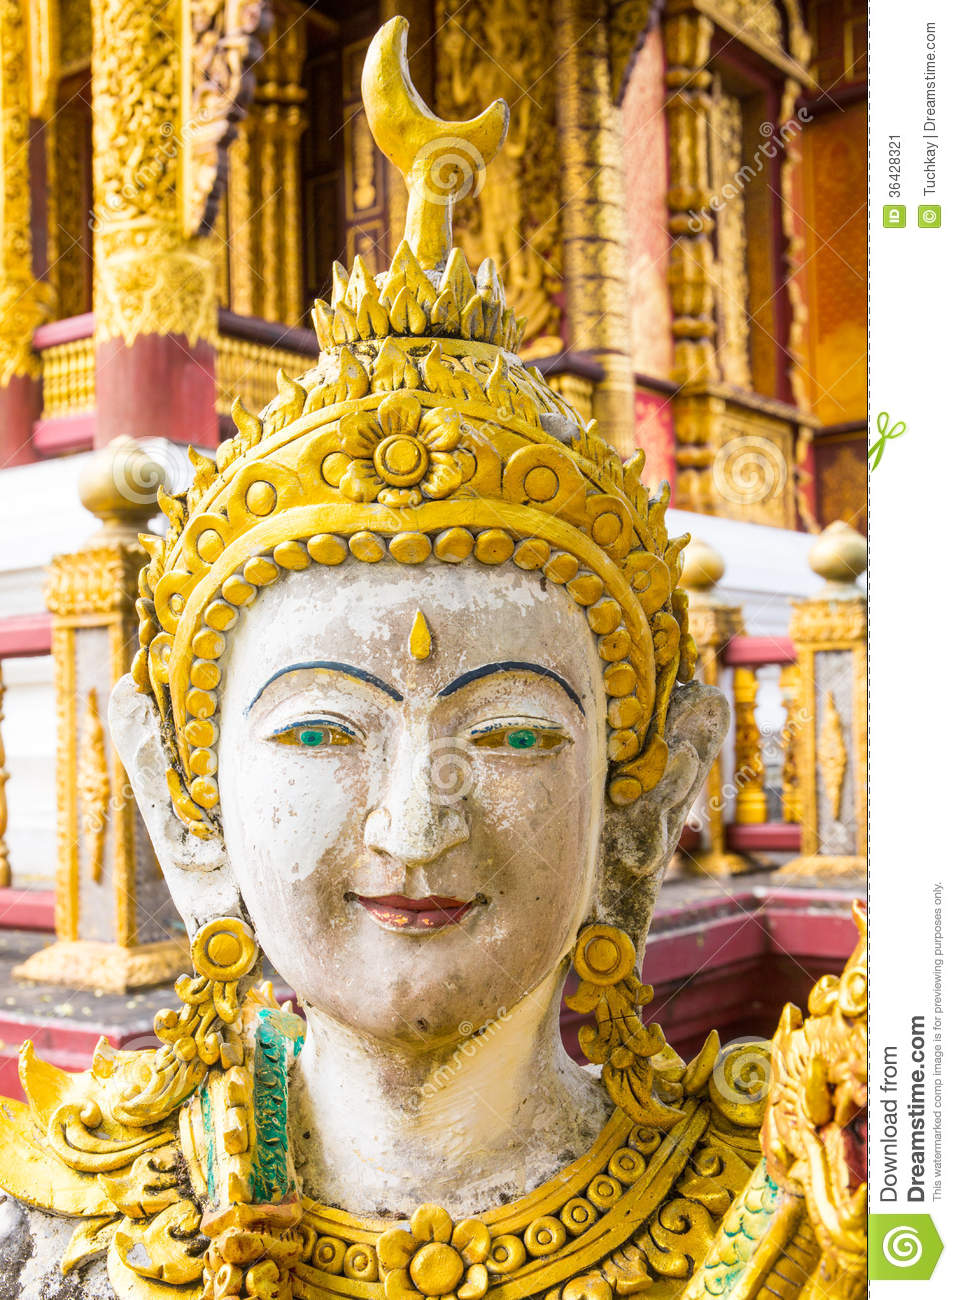 buddhist traditions In other words, to accept the more sensible and reasonable account given by  modern historians is not to abandon traditional buddhist beliefs and teachings.